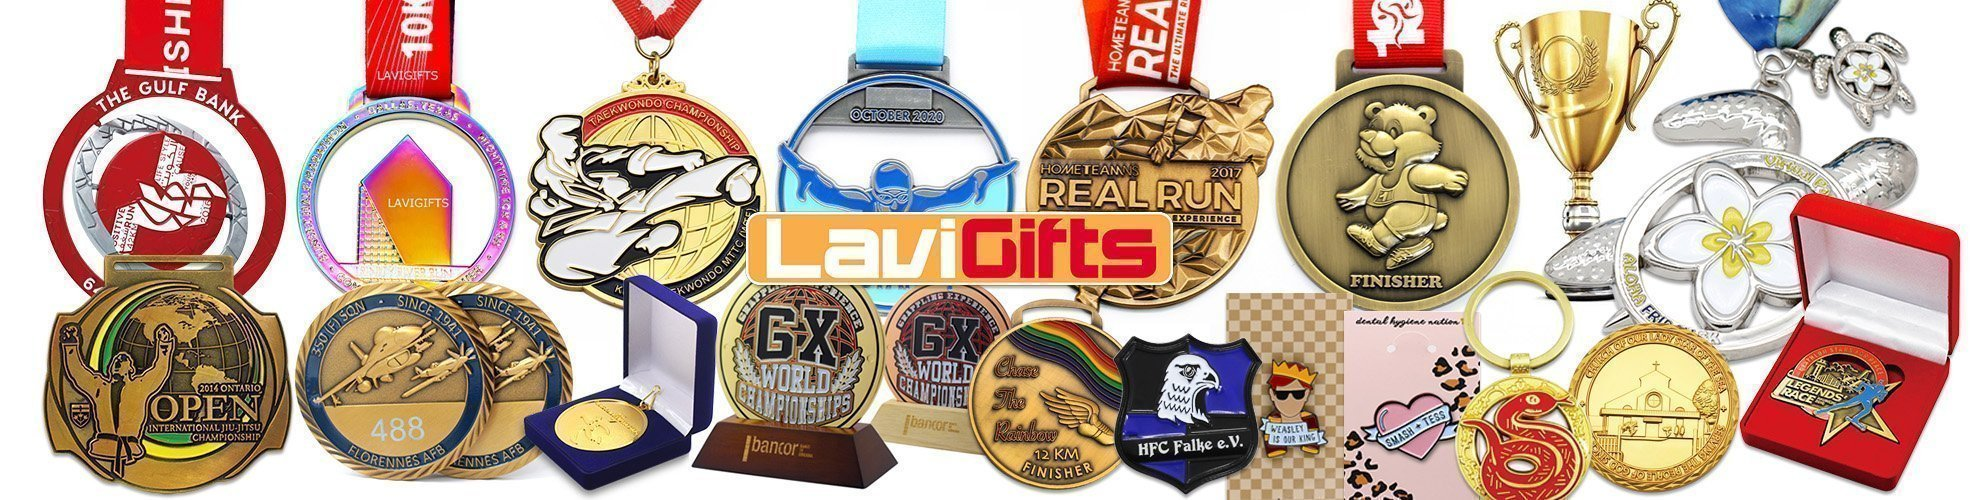 Chinese medal manufacturer